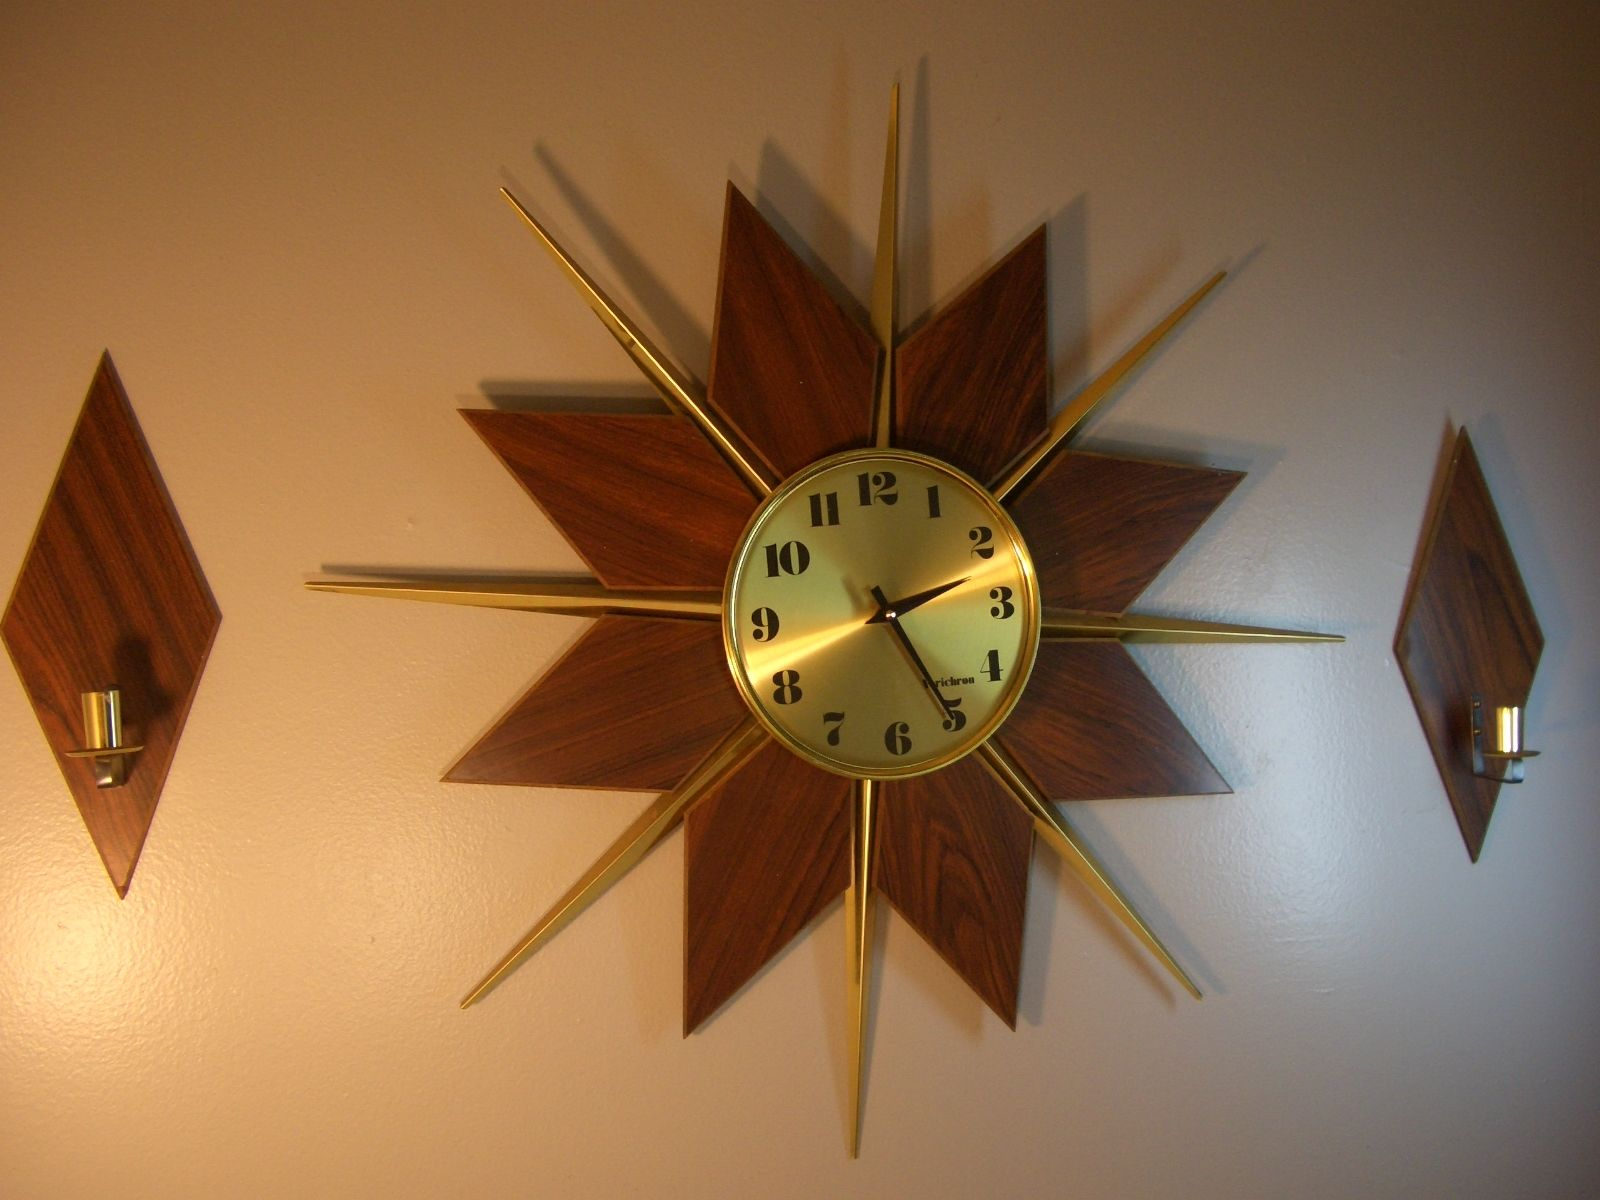 Stunning Starburst Wall Decor With Clock for vintage wall accessories ideas